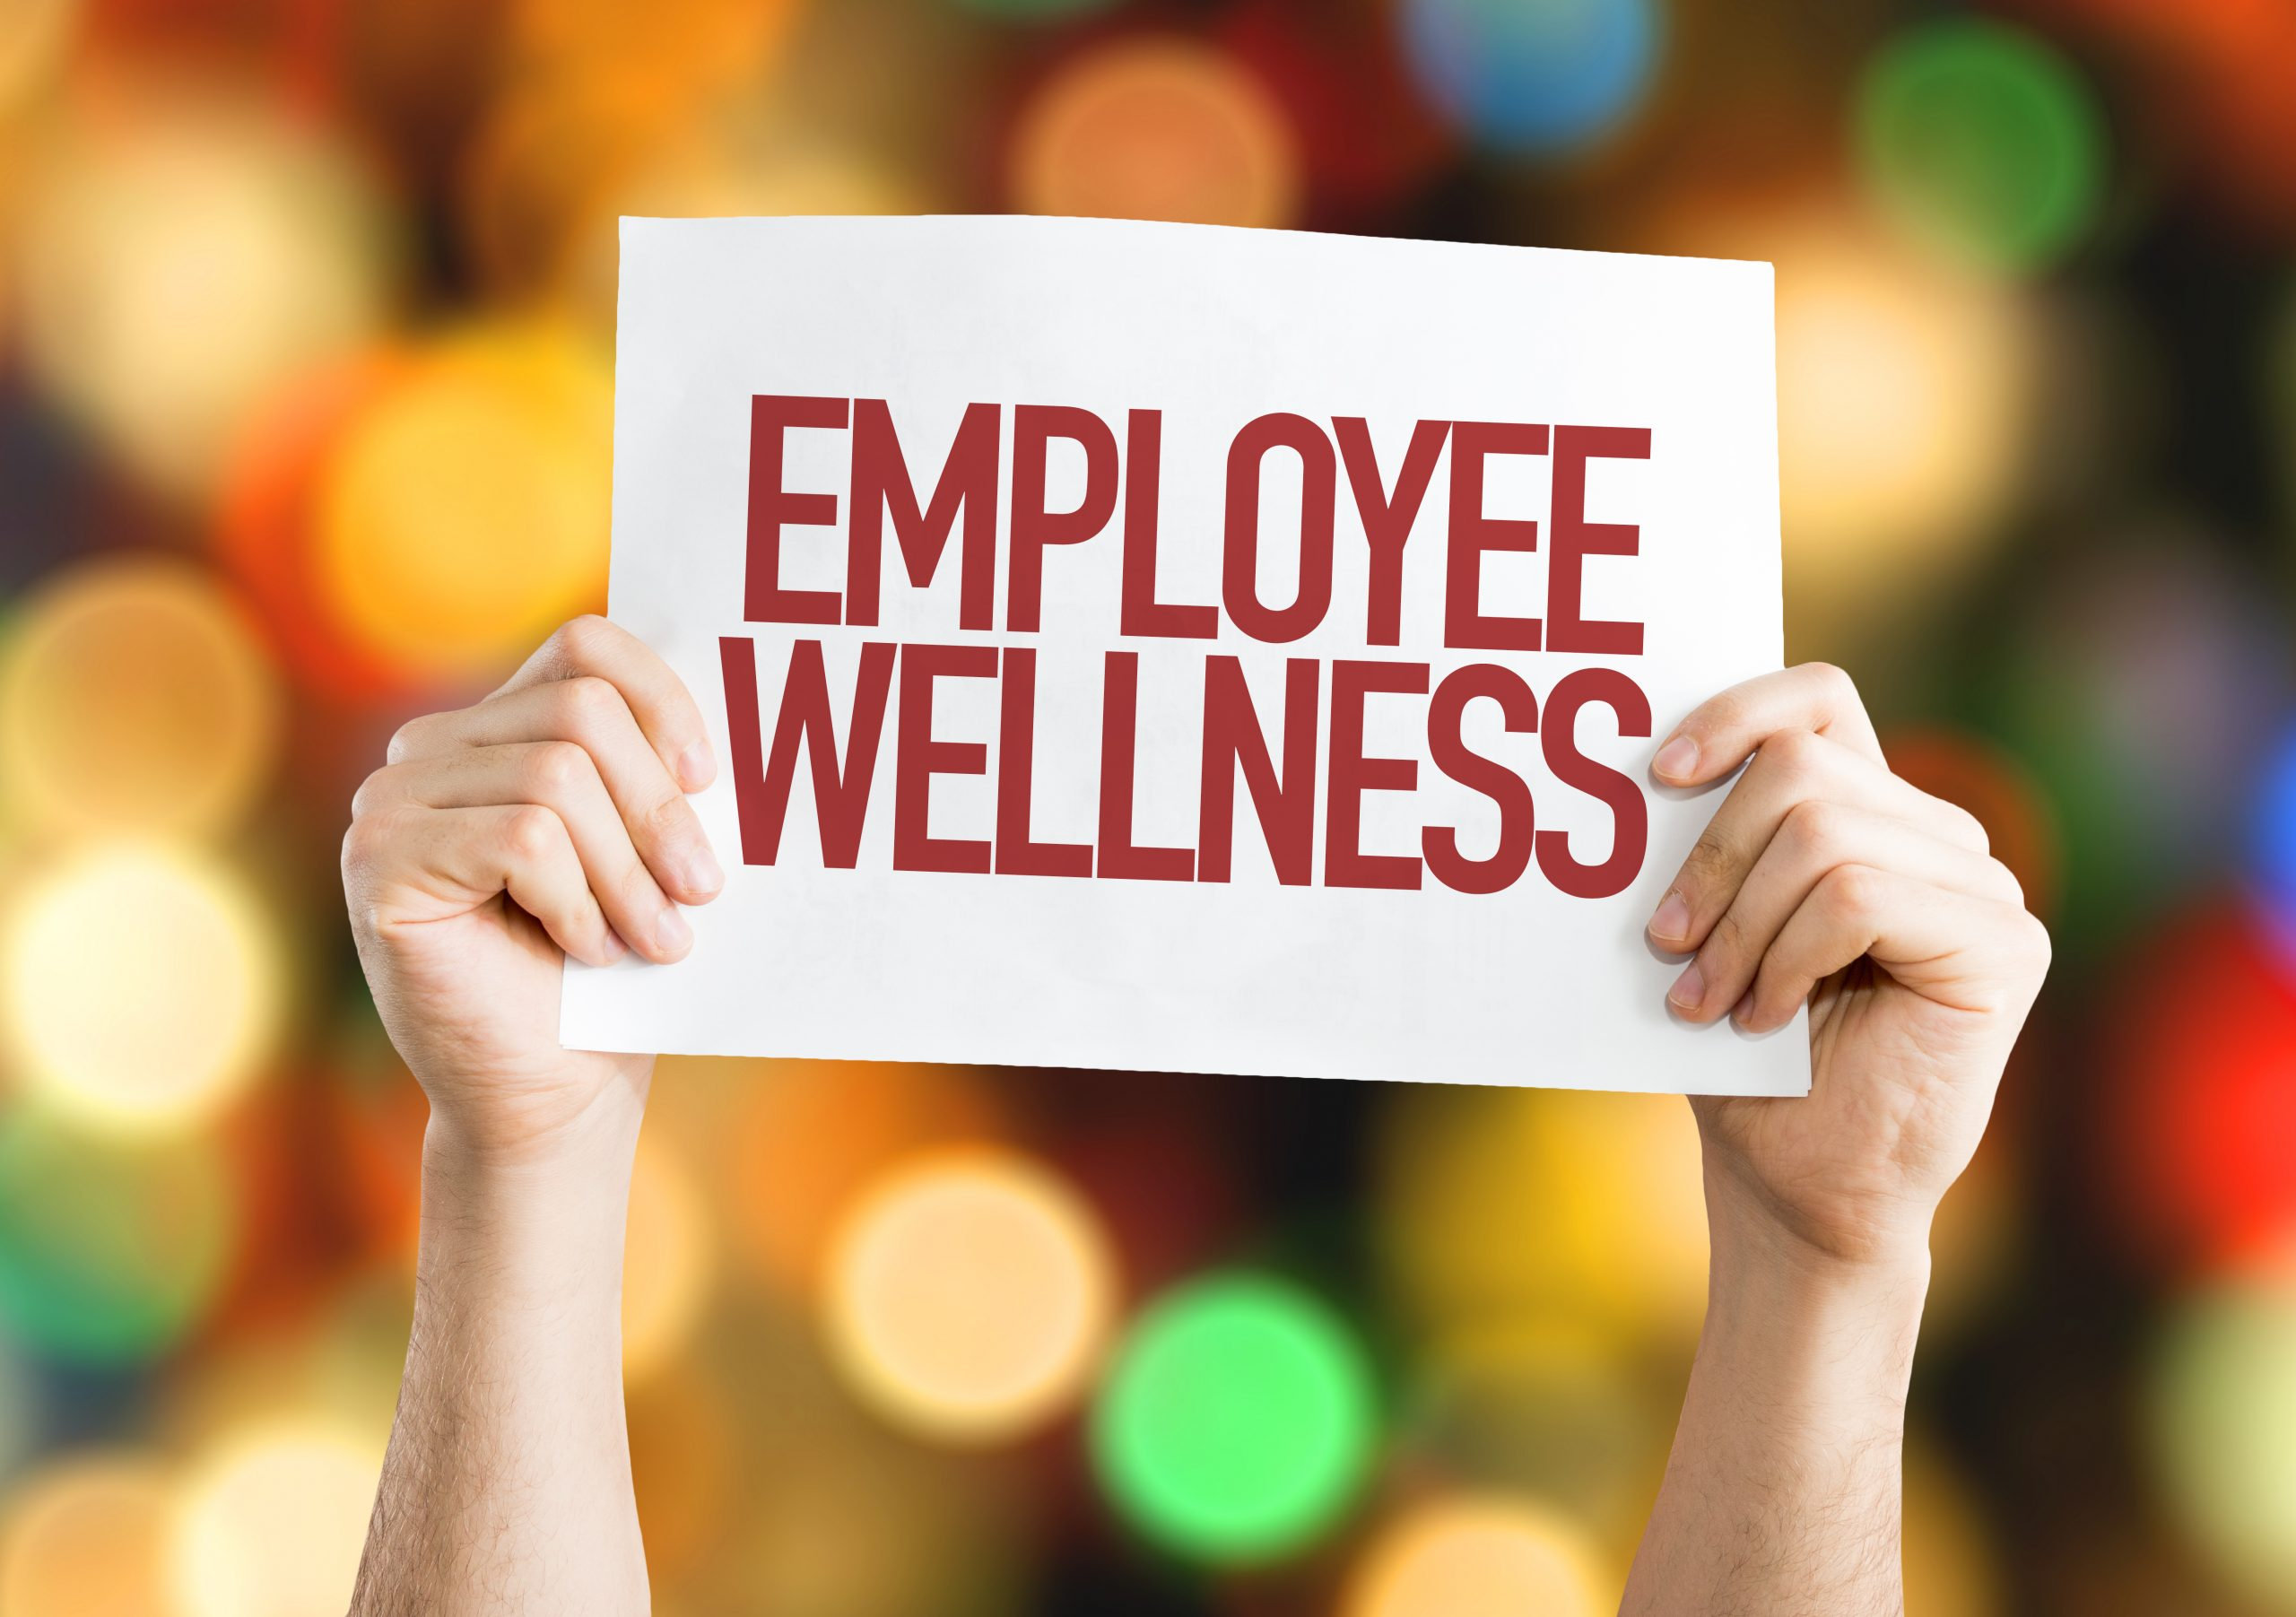 Covid-19 is changing employee benefits and retention strategies